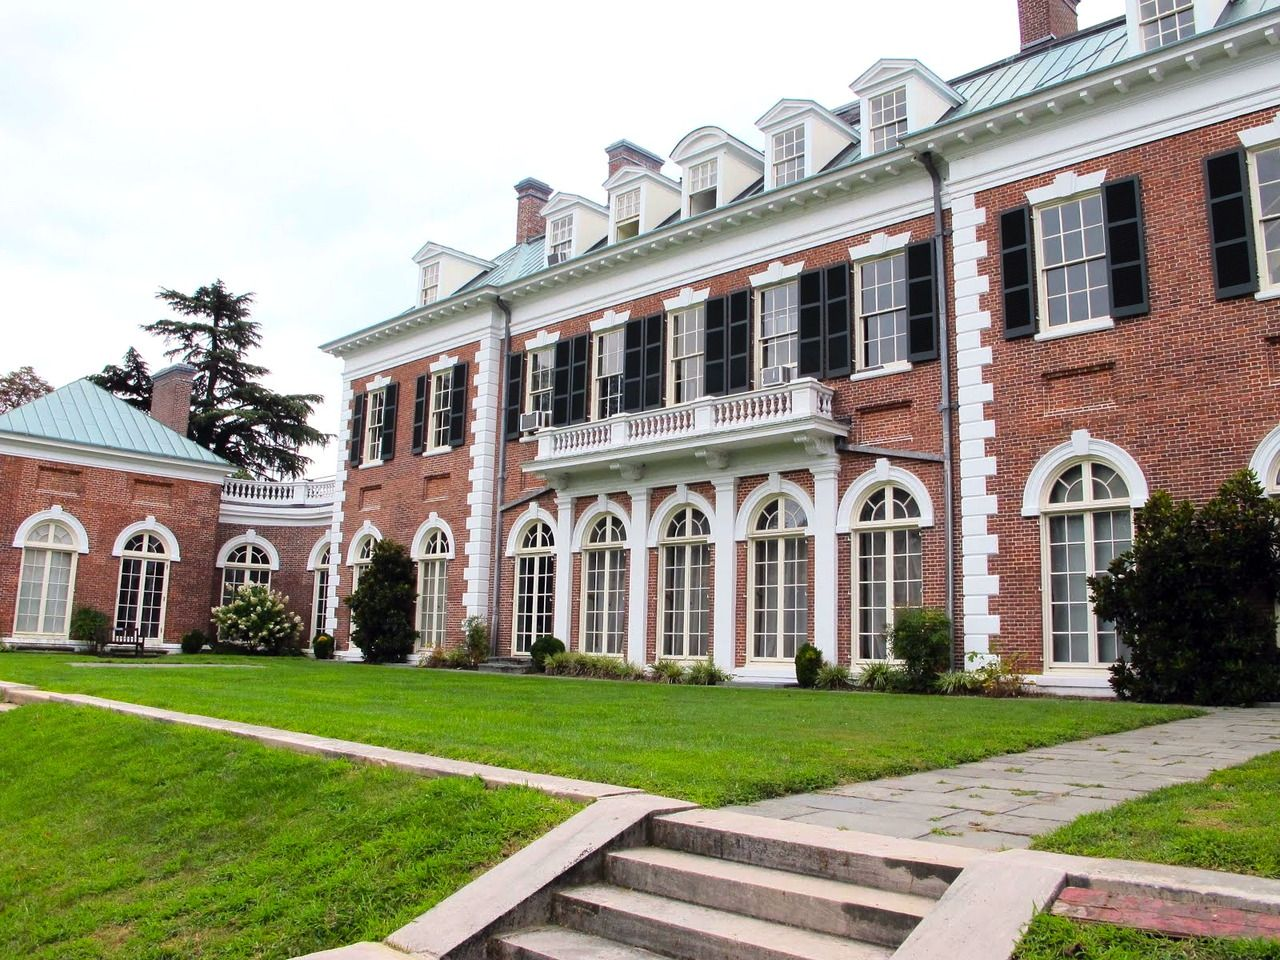 Pin By Ann Pauls On Favorite Rooms And Houses Georgian Architecture Villa Style Old Mansions